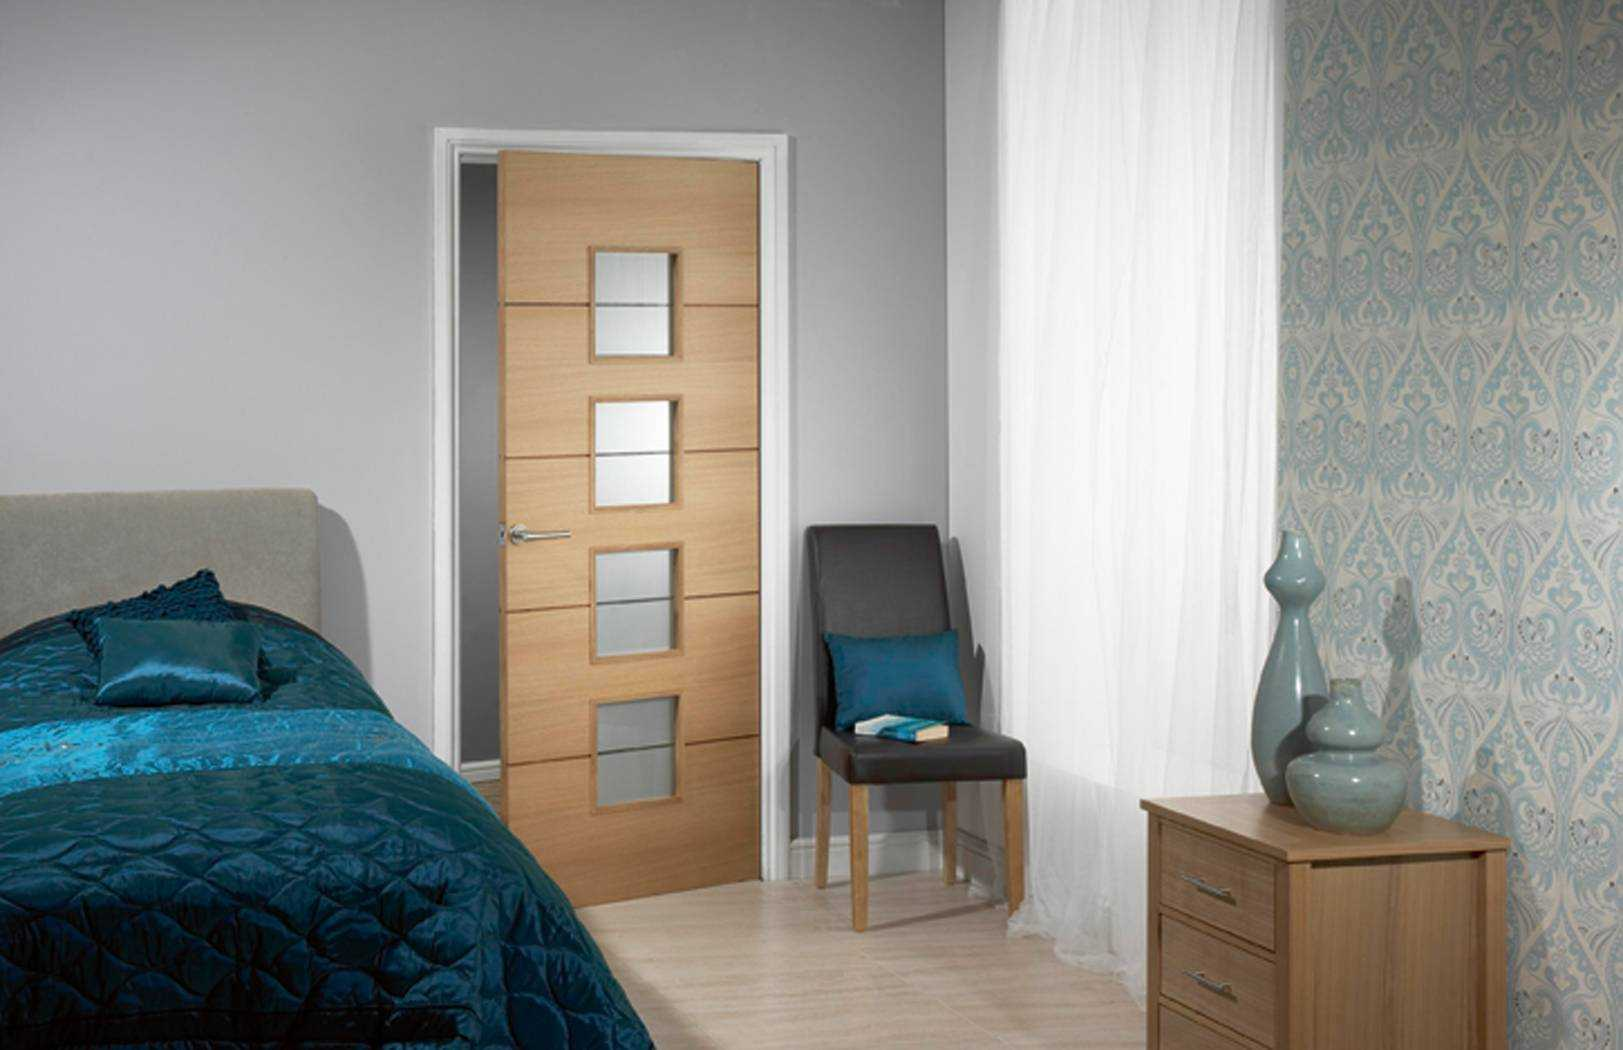 Steel and fiberglass bedroom doors